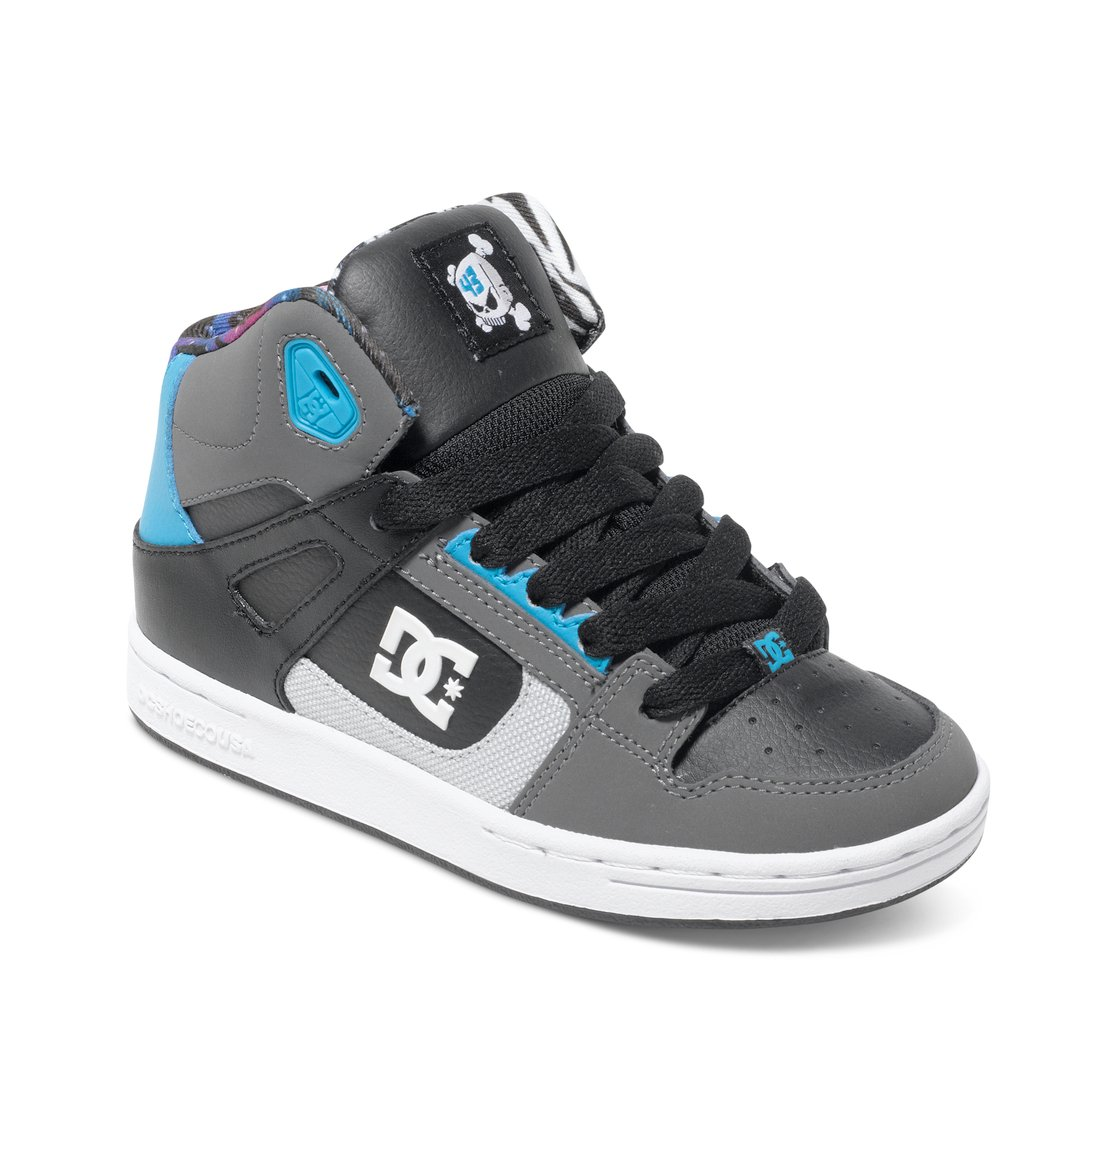 Rebound KB - Dcshoes������� ���� Rebound KB ��� ��������� �� DC Shoes. <br>��������������: ������ �� ���� �����, ����������� ���������, ������� ��� � �������������� ���������, ������� ���� � ������� � ������ ������������, ���� � ��������� �����������, ��������� ��� �������� � ���������� �� �����������, ����������� Cupsole, ������������� ���������� �������, ��������� ������� ���������� ������� DC Pill Pattern. <br>������: ����: ���� / ���������: �������� / �������: ������.<br>